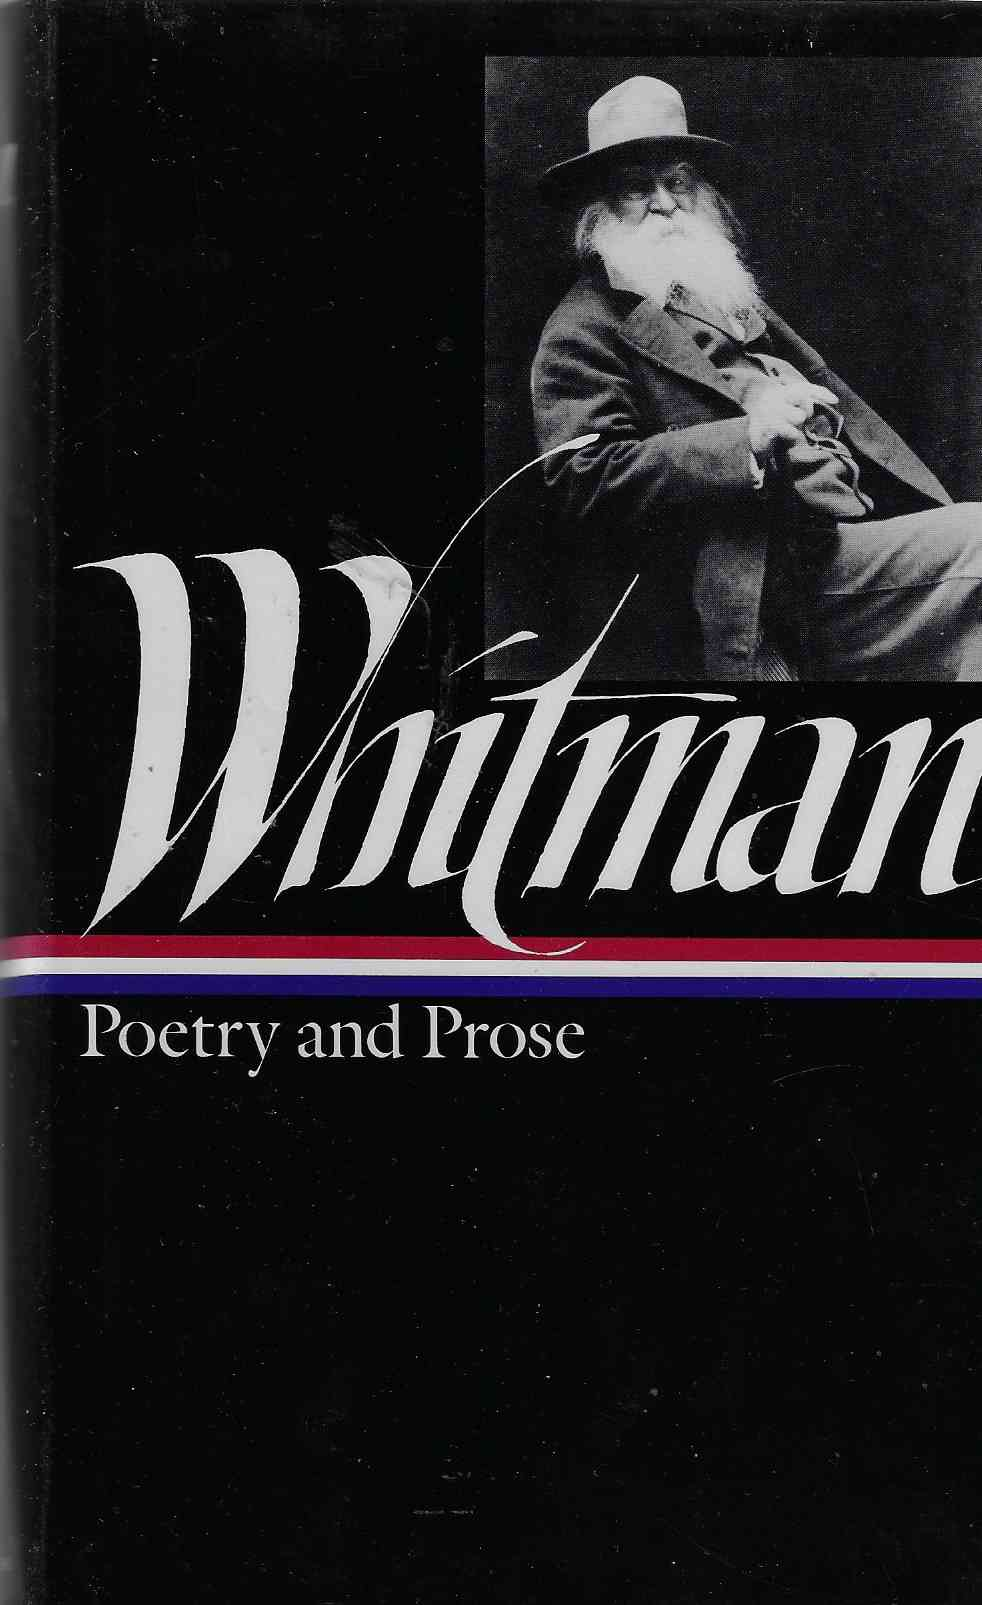 Image for Walt Whitman Poetry and Prose (The Library of America)